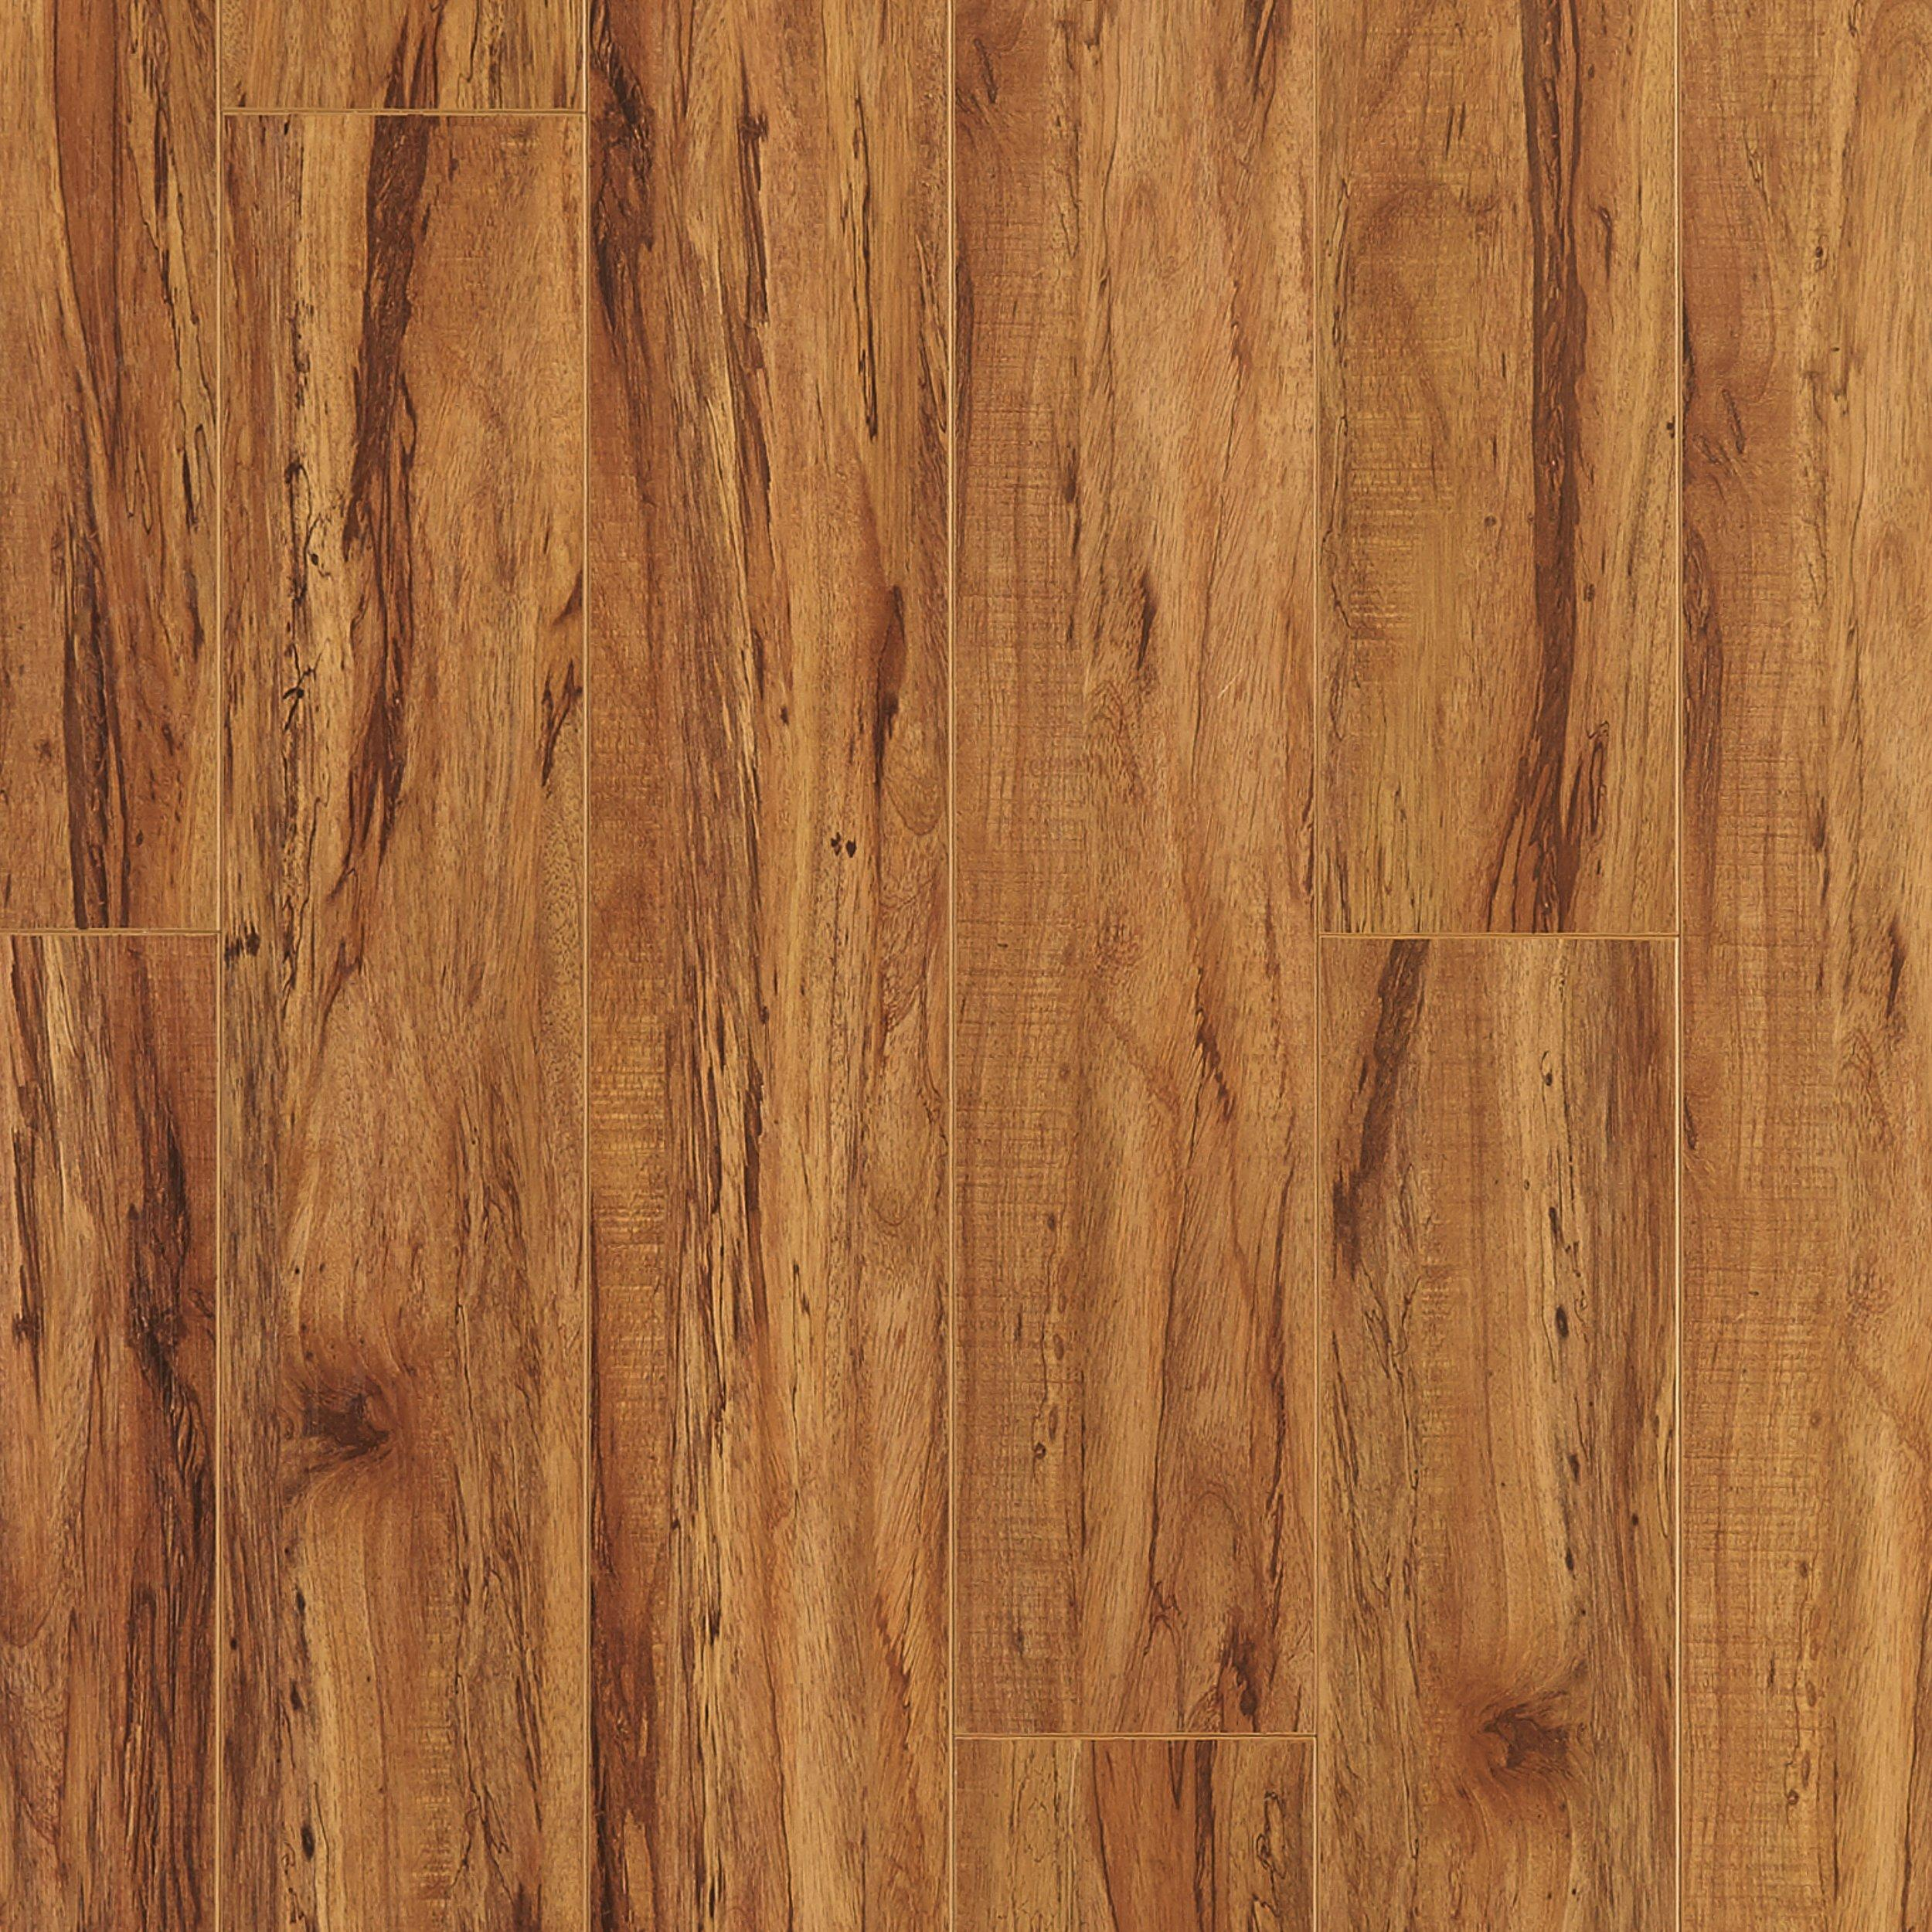 Hampstead Tuscan Olive Hand Scraped Laminate   12mm   100130475 | Floor And  Decor